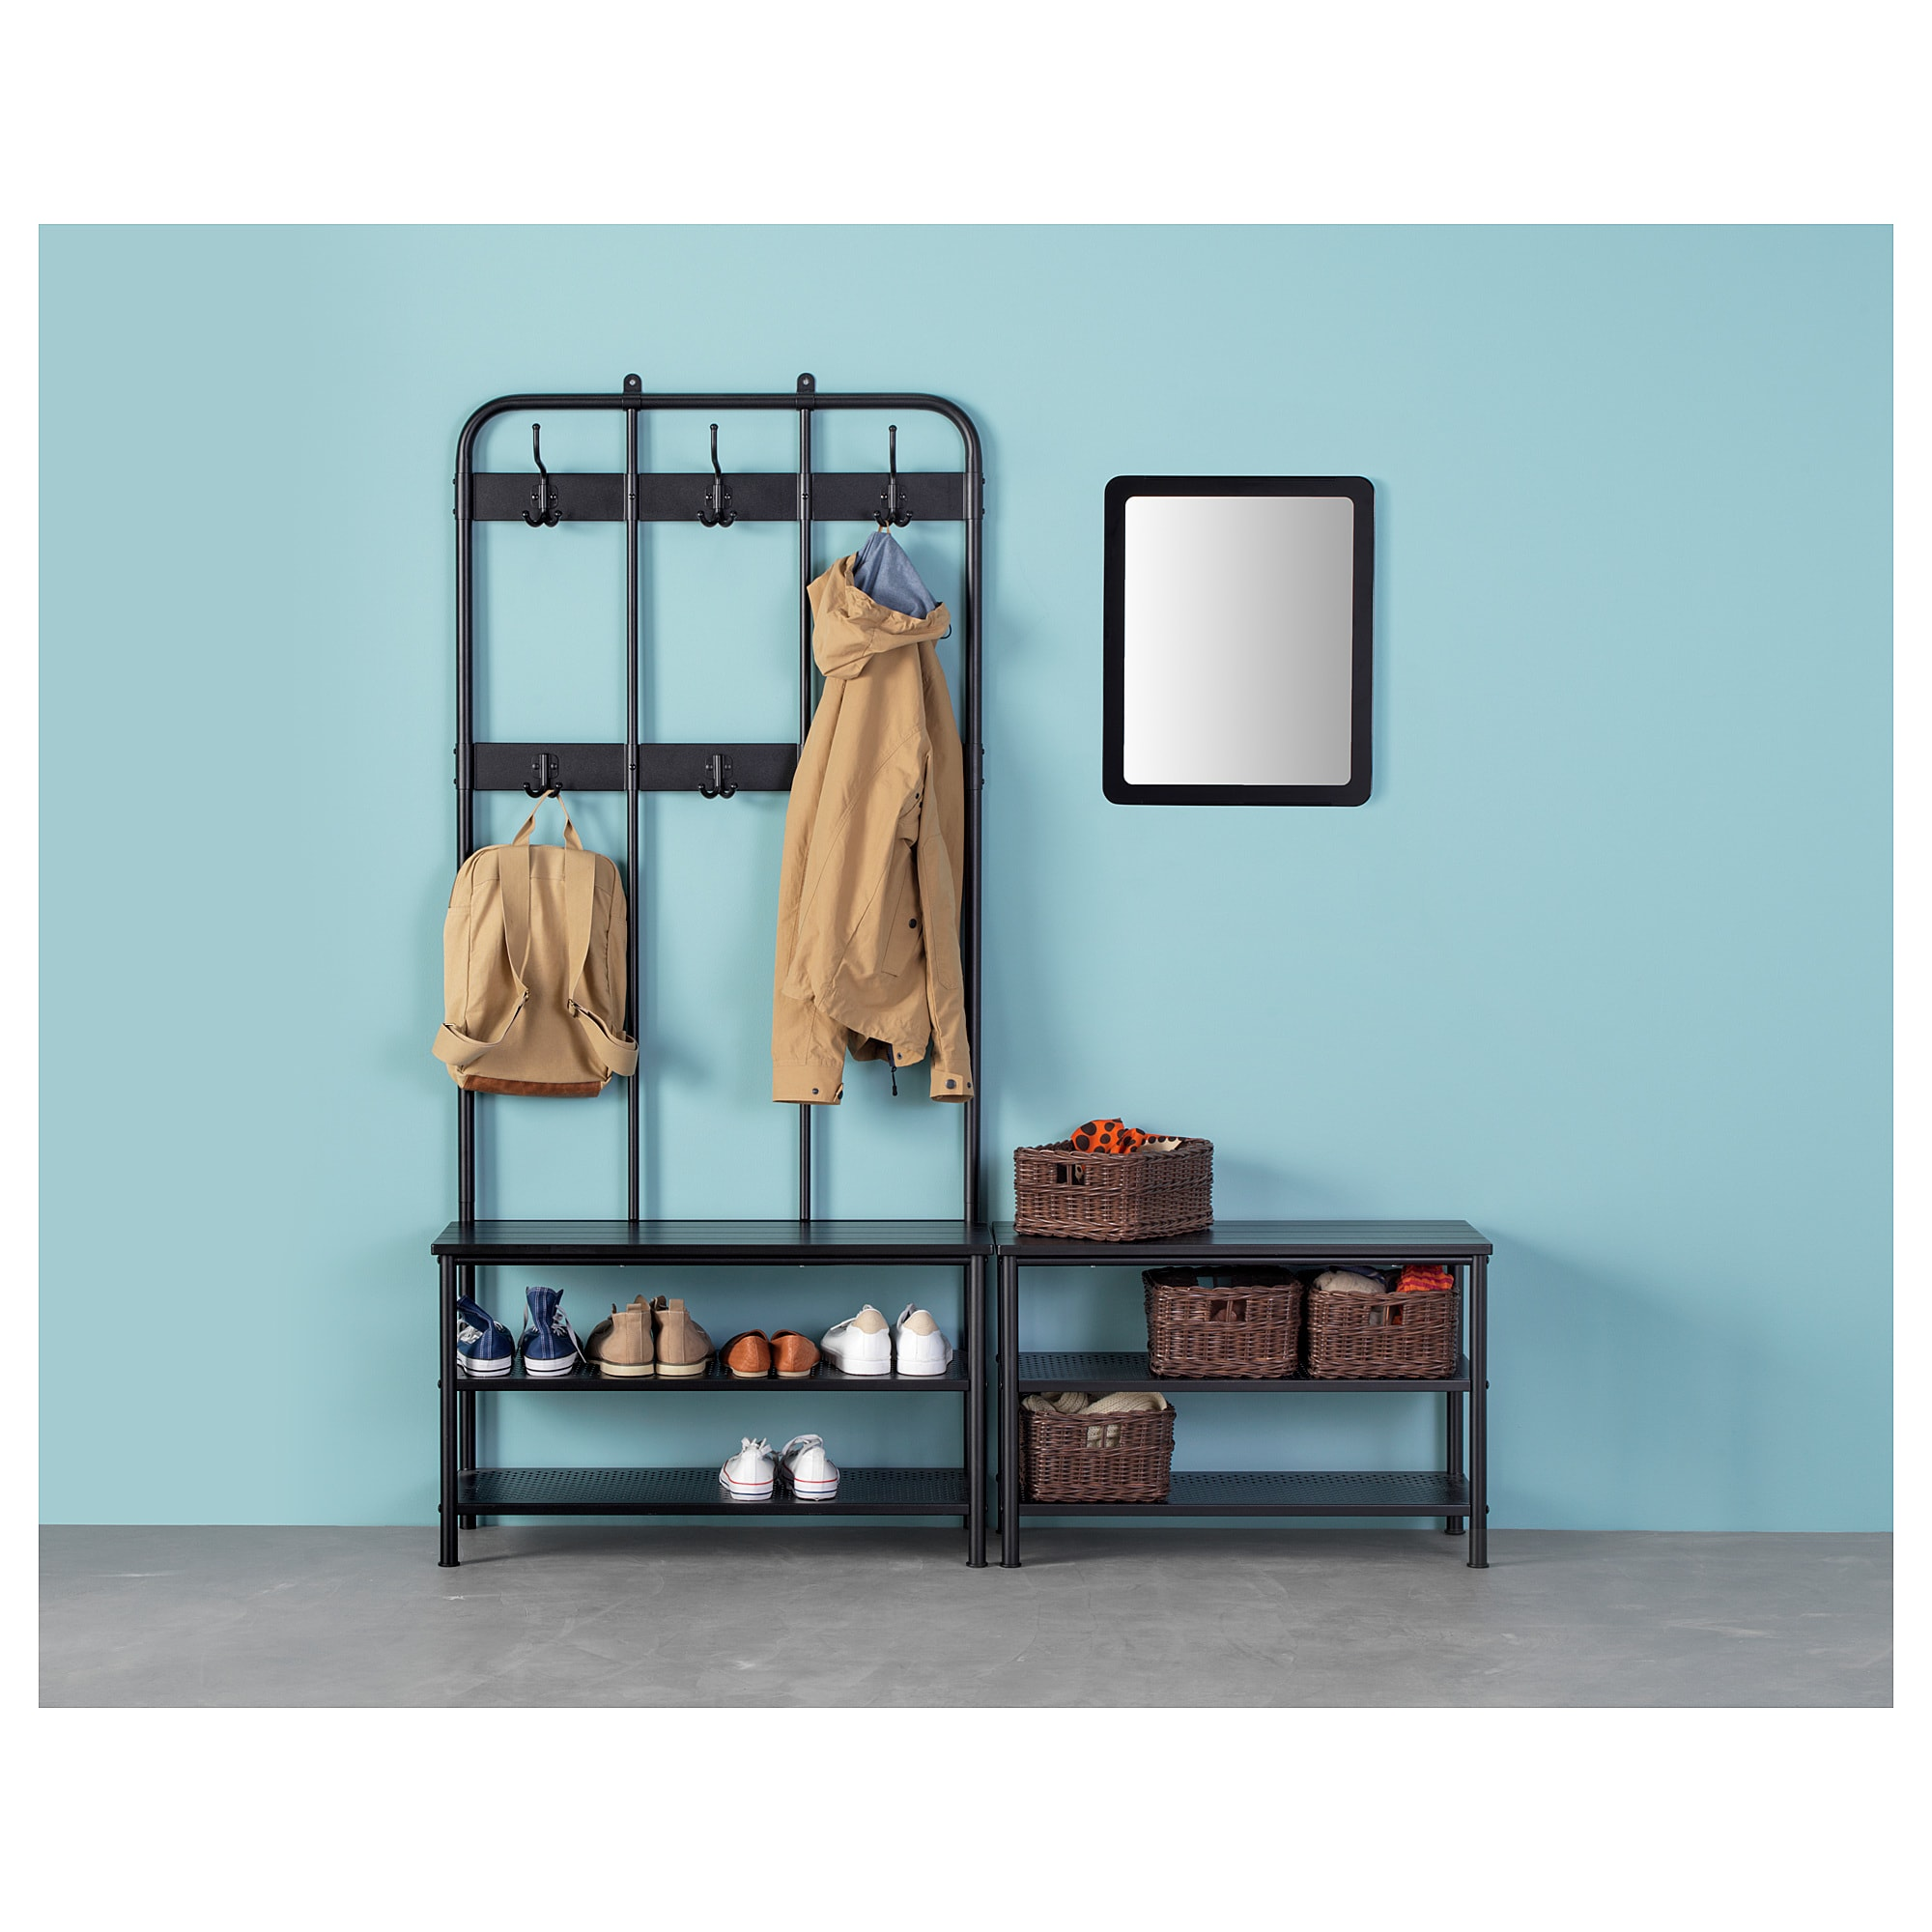 Ikea Pinnig Bench With Shoe Storage Black In 2019